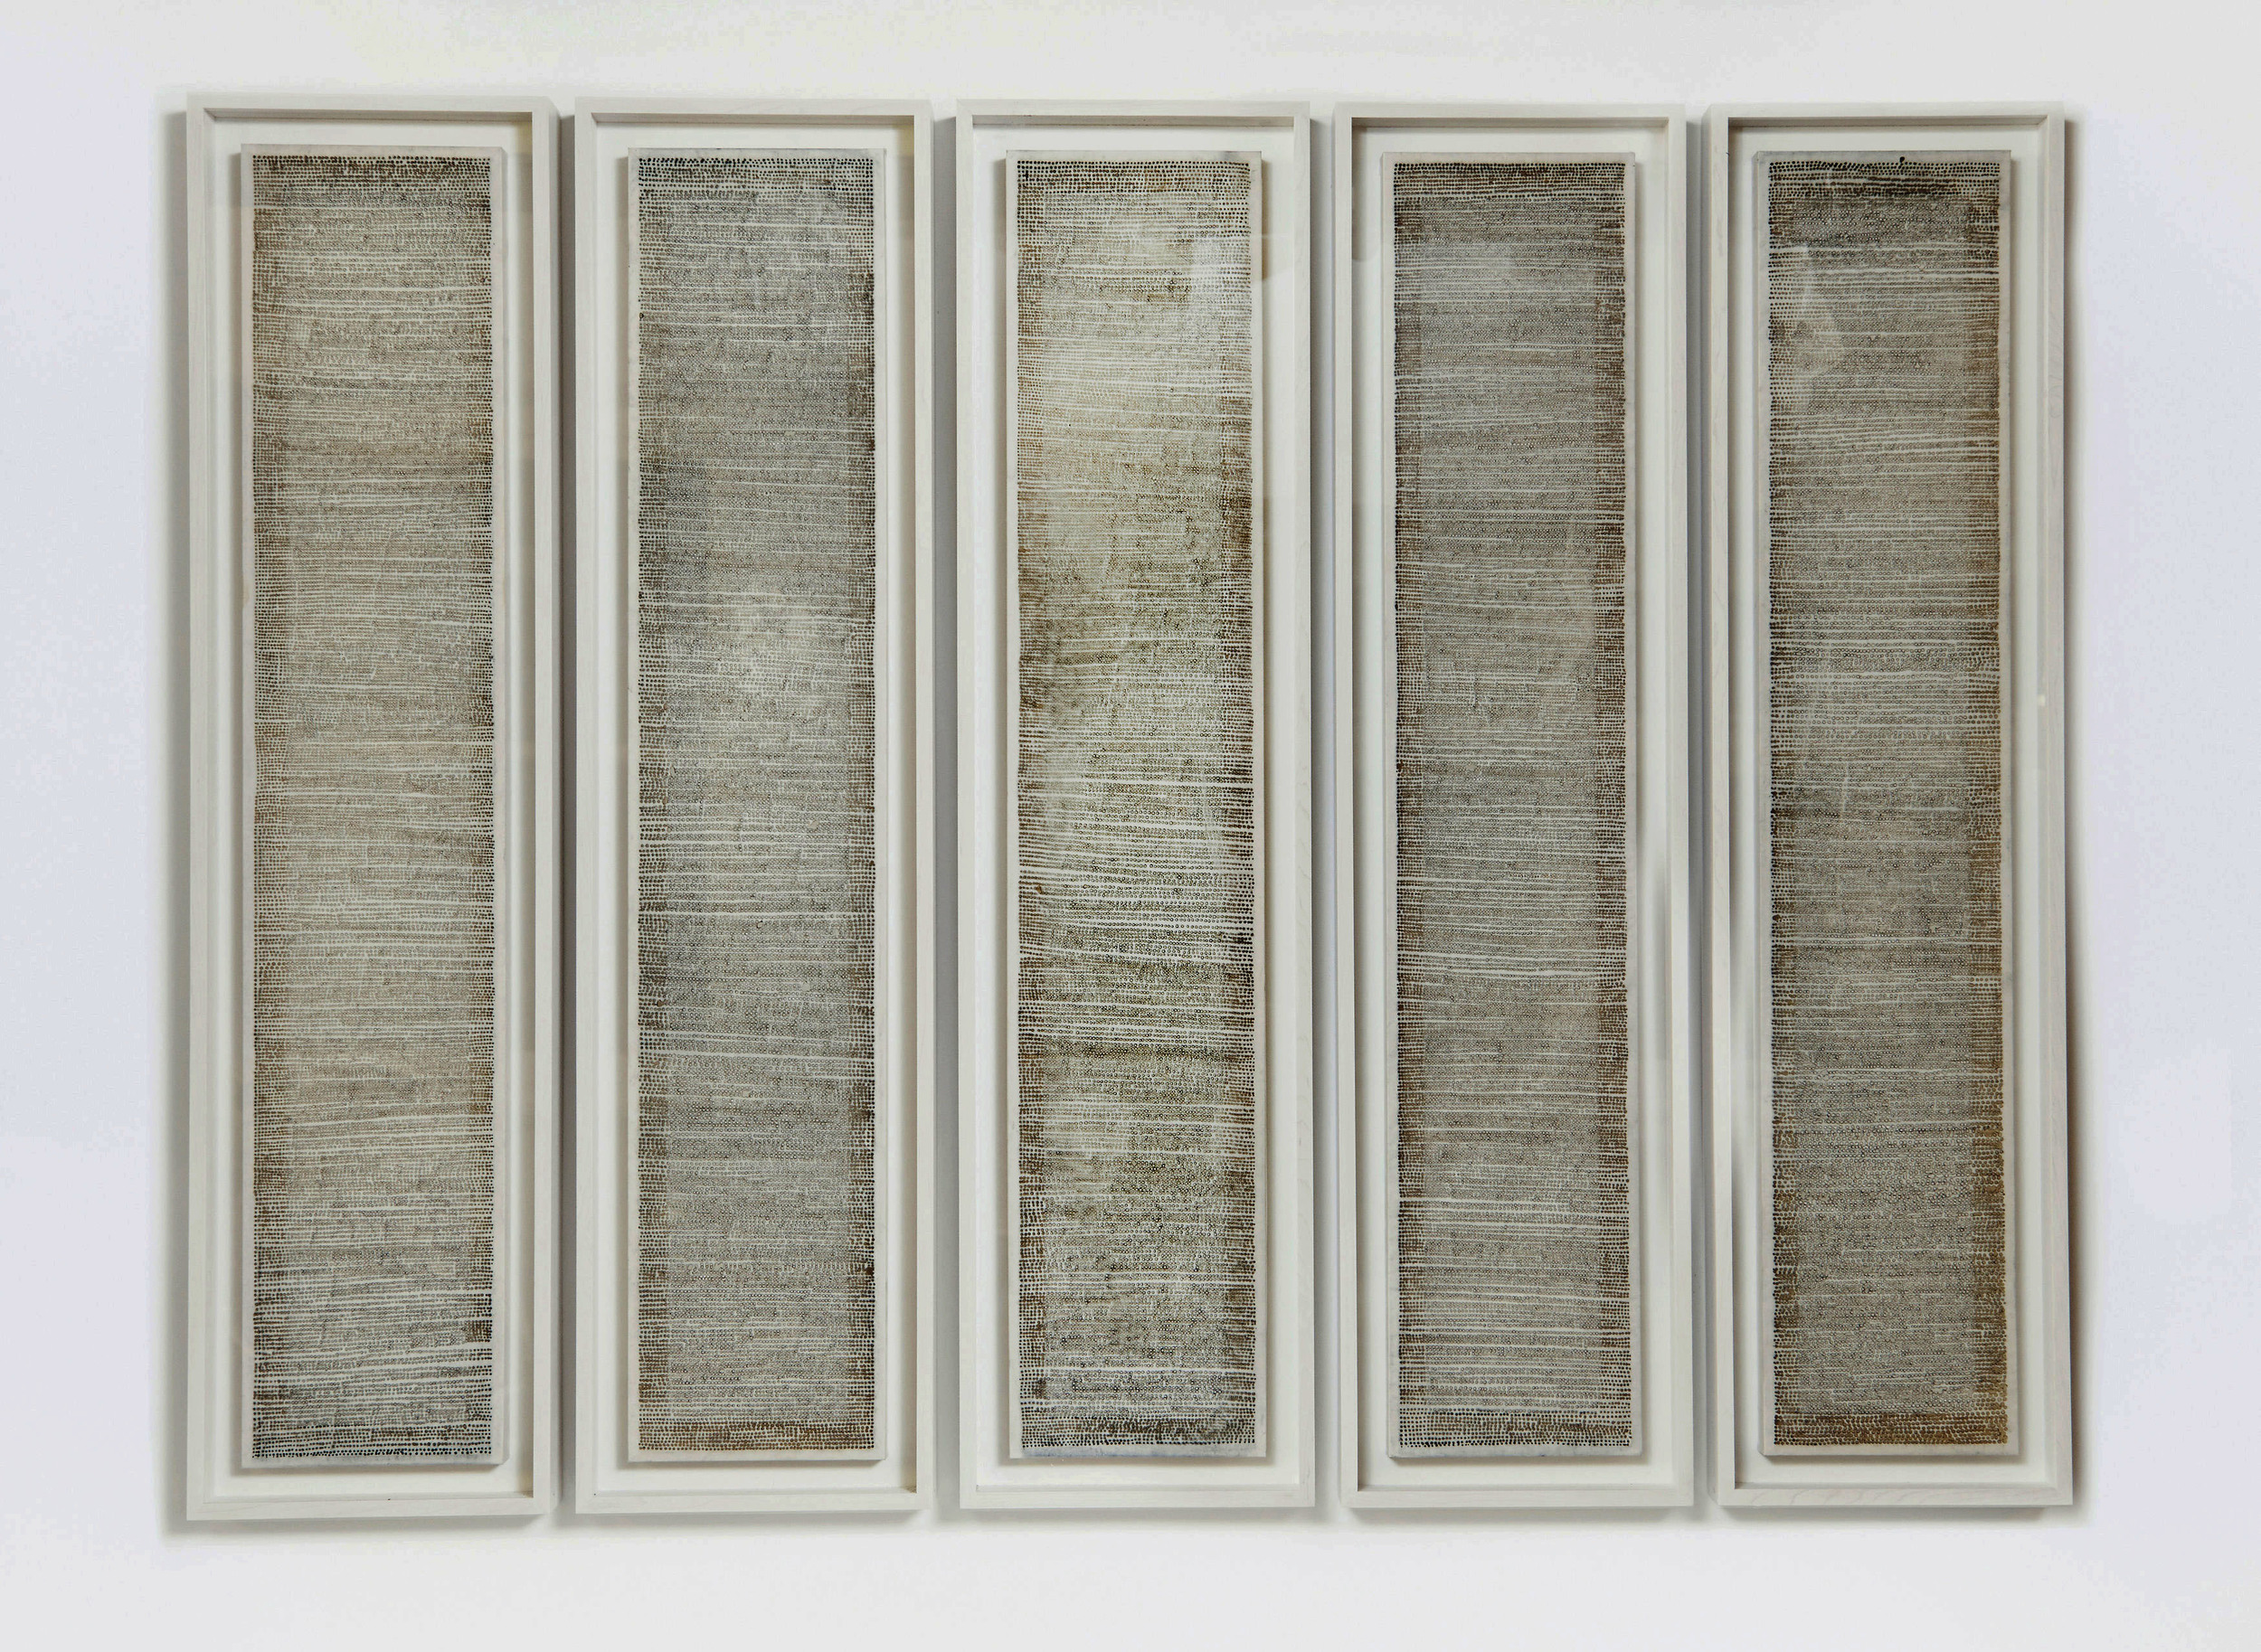 ' 86400 voids [24 hour drawing]', incense burnt rice paper, 33 x 150 cm each screen